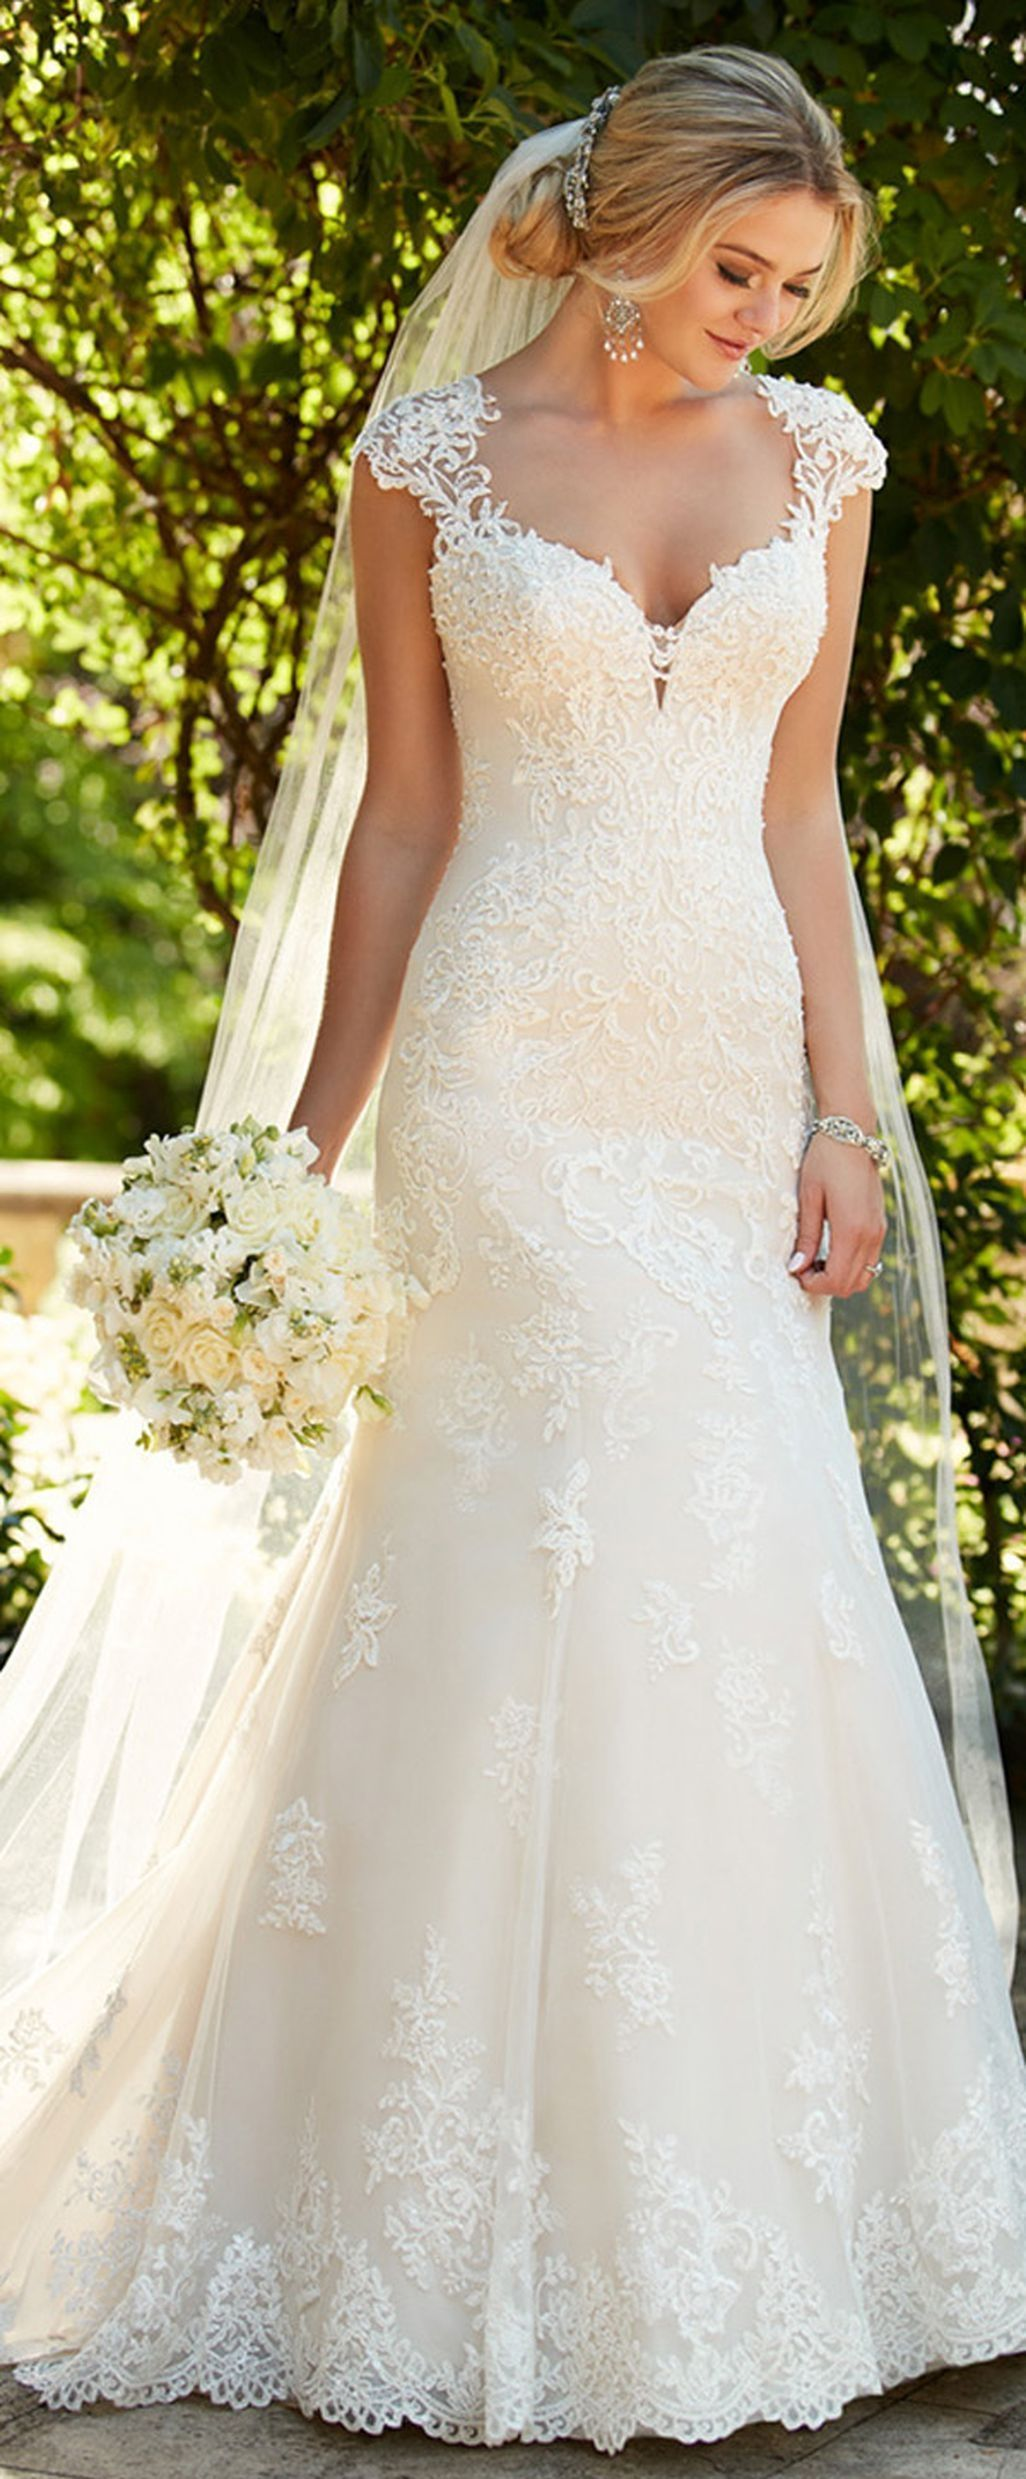 Cool 47 Gorgeous V Neck Tulle Wedding Dress Ideas 2018. More at ...